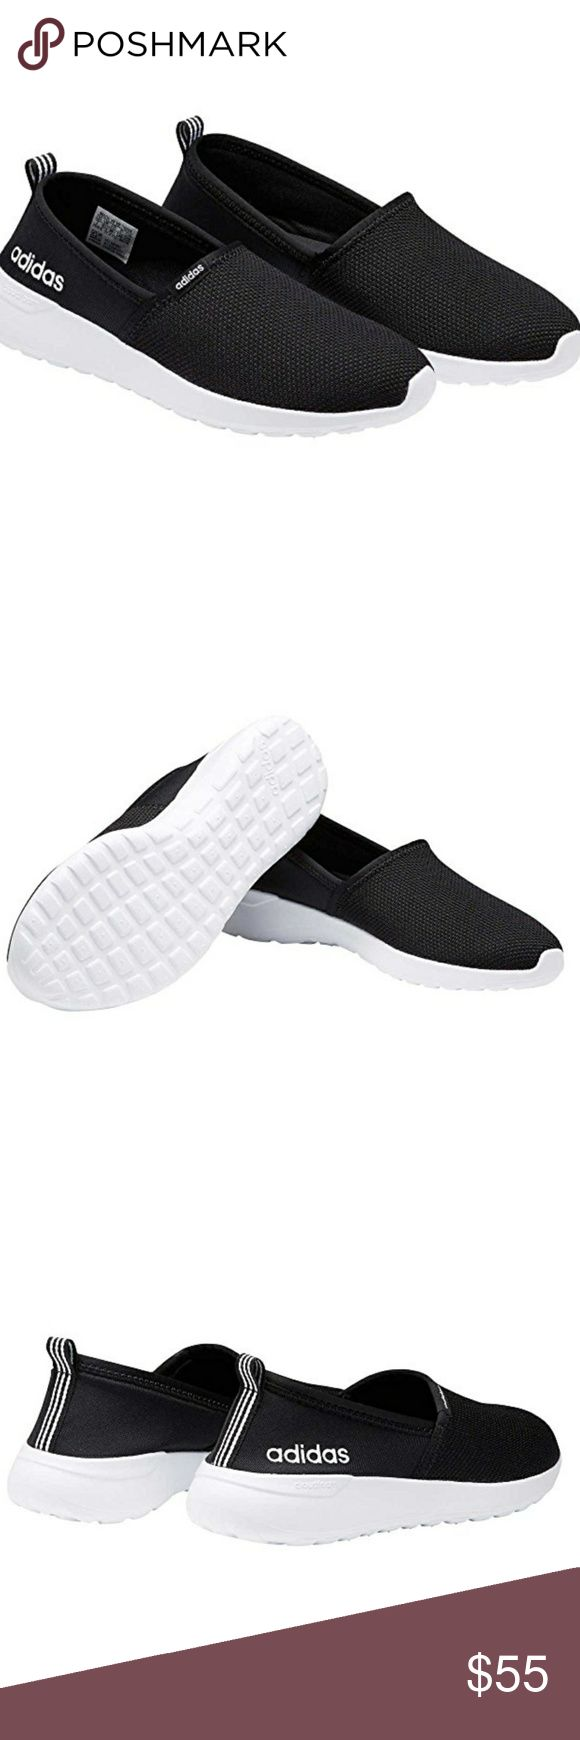 Adidas Black Neo Slip On Shoes Comfortable and Stylish. Light Racer Slip On. Casual Sneaker. Adidas Designs Another Casual yet Cool Shoe. Perfect for Everyday. Take Them Grocery Shopping, on a Brisk Walk, or Match With a Cute Dress. NEVER WORN. COME IN ORIGINAL BOX. TRUE TO SIZE. Adidas Shoes